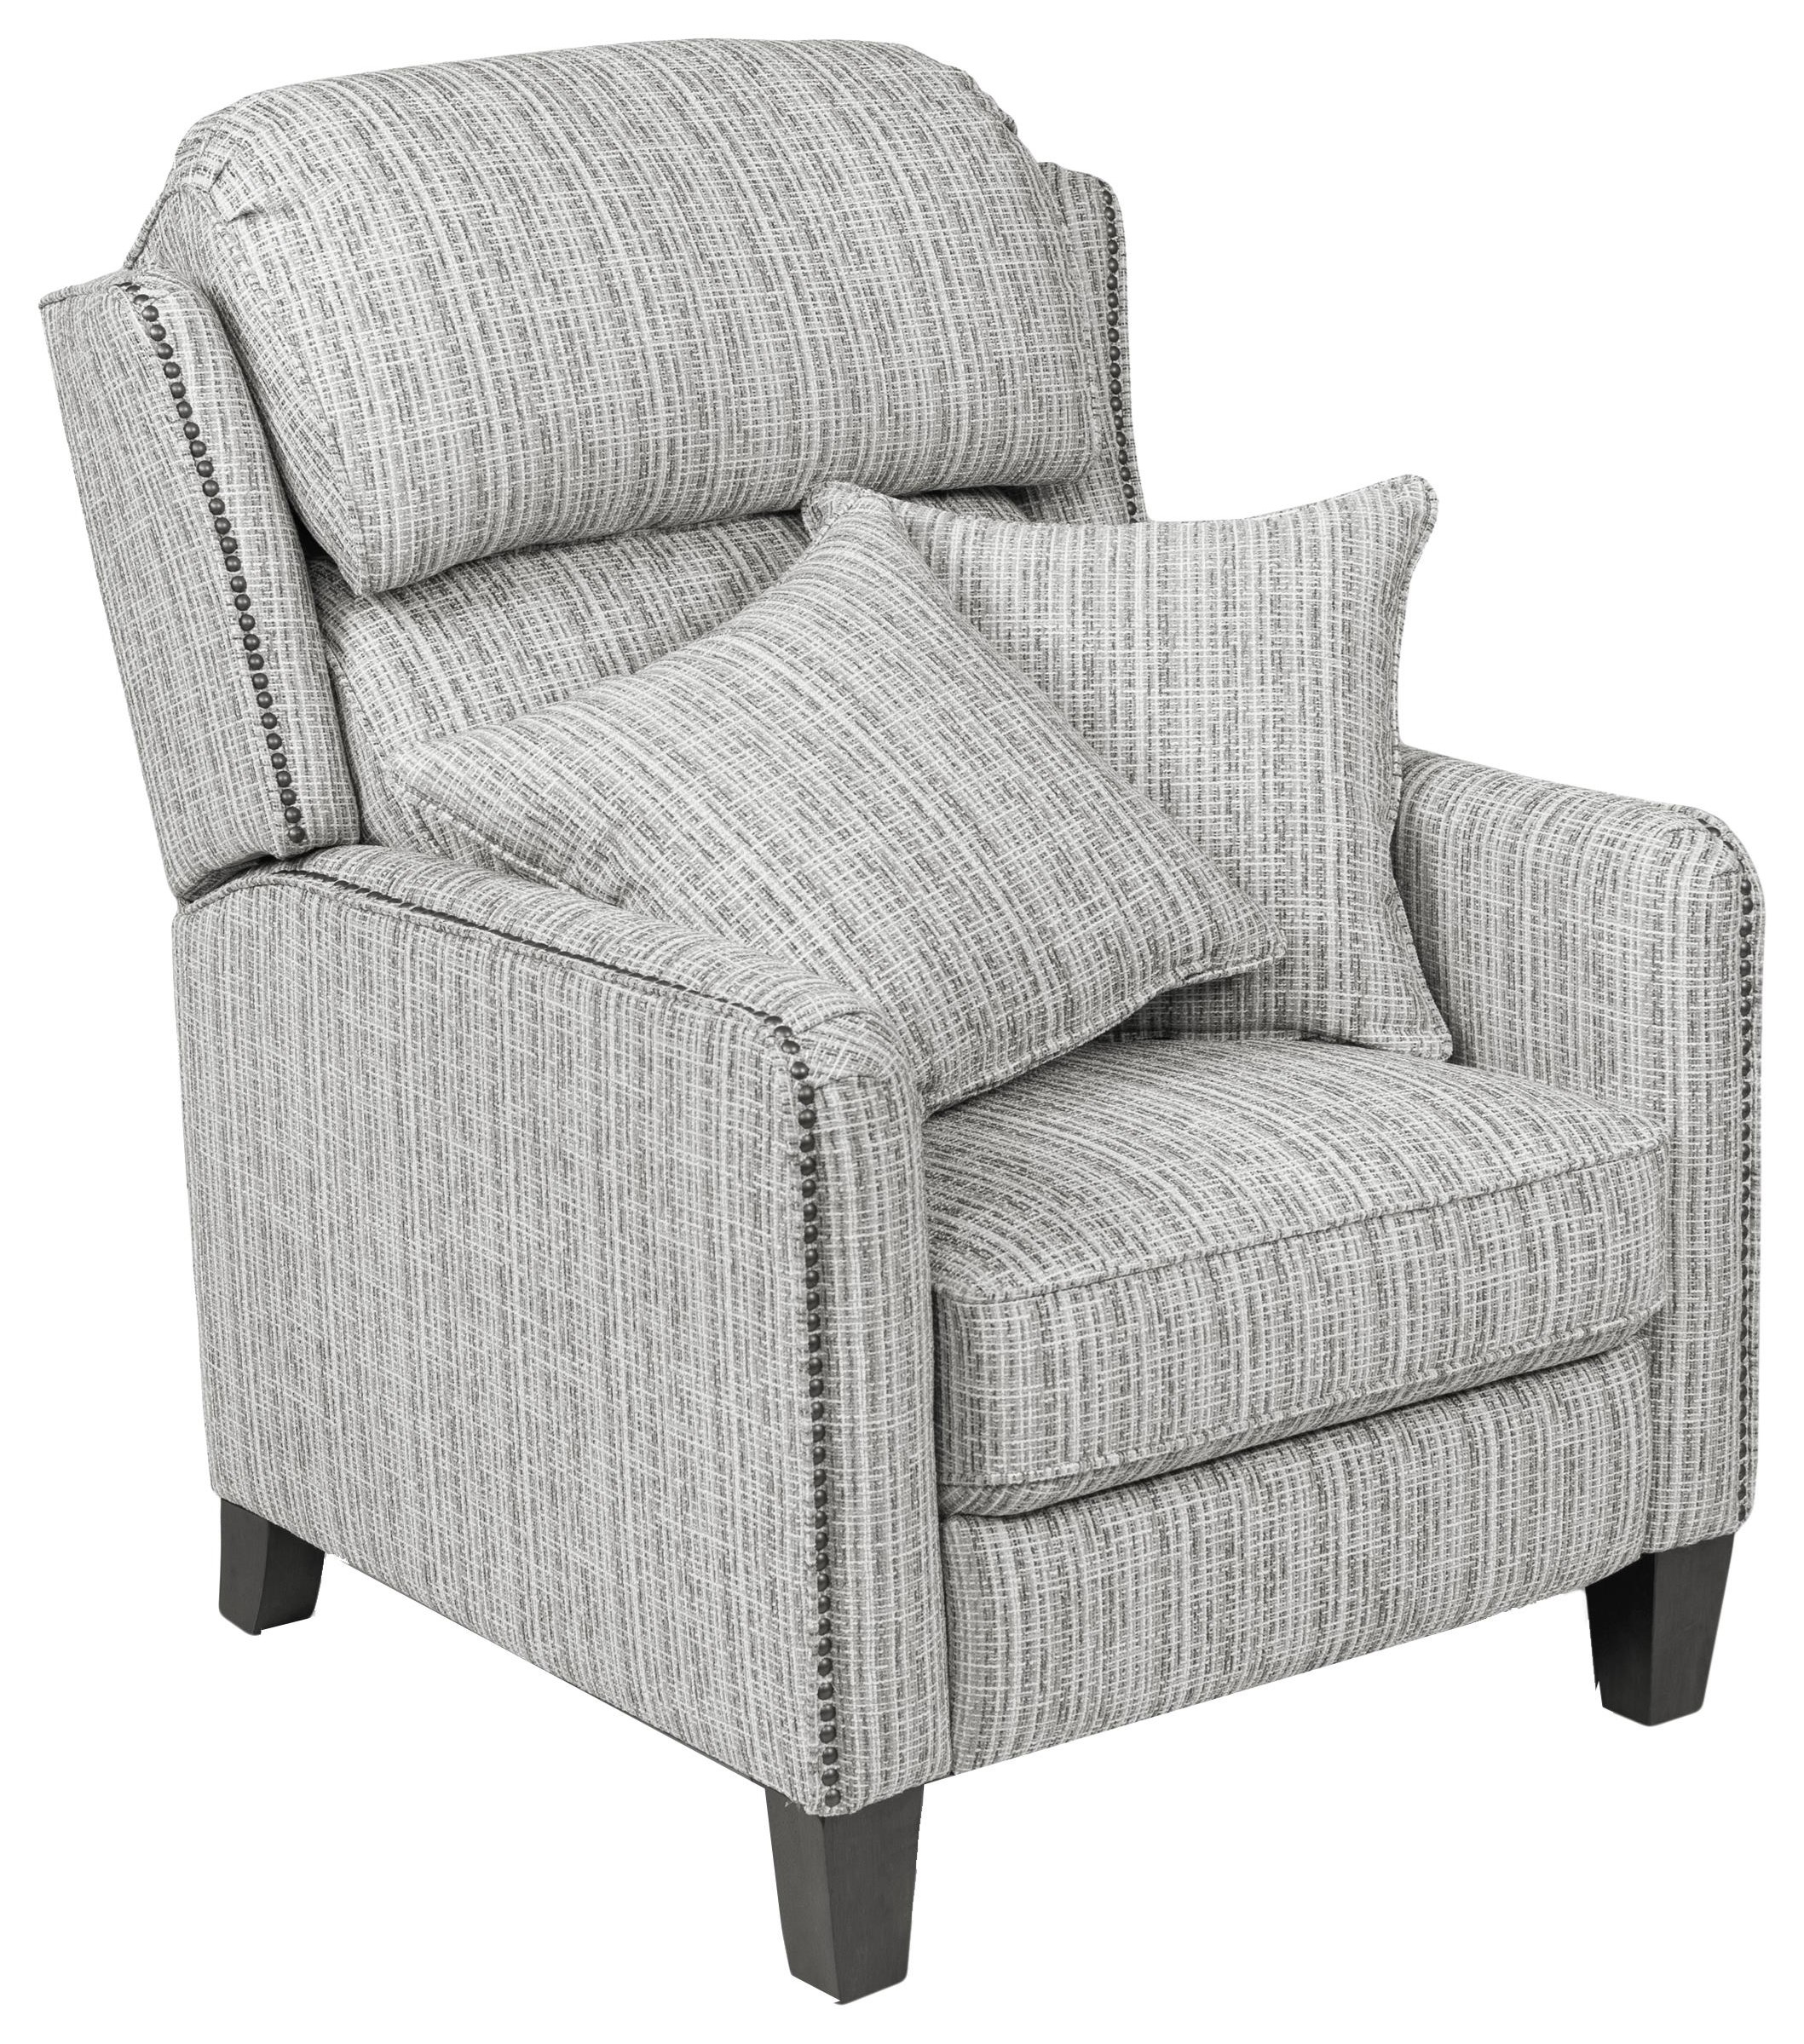 1657 Recliner/bryant Platinum by Synergy Home Furnishings at Stoney Creek Furniture